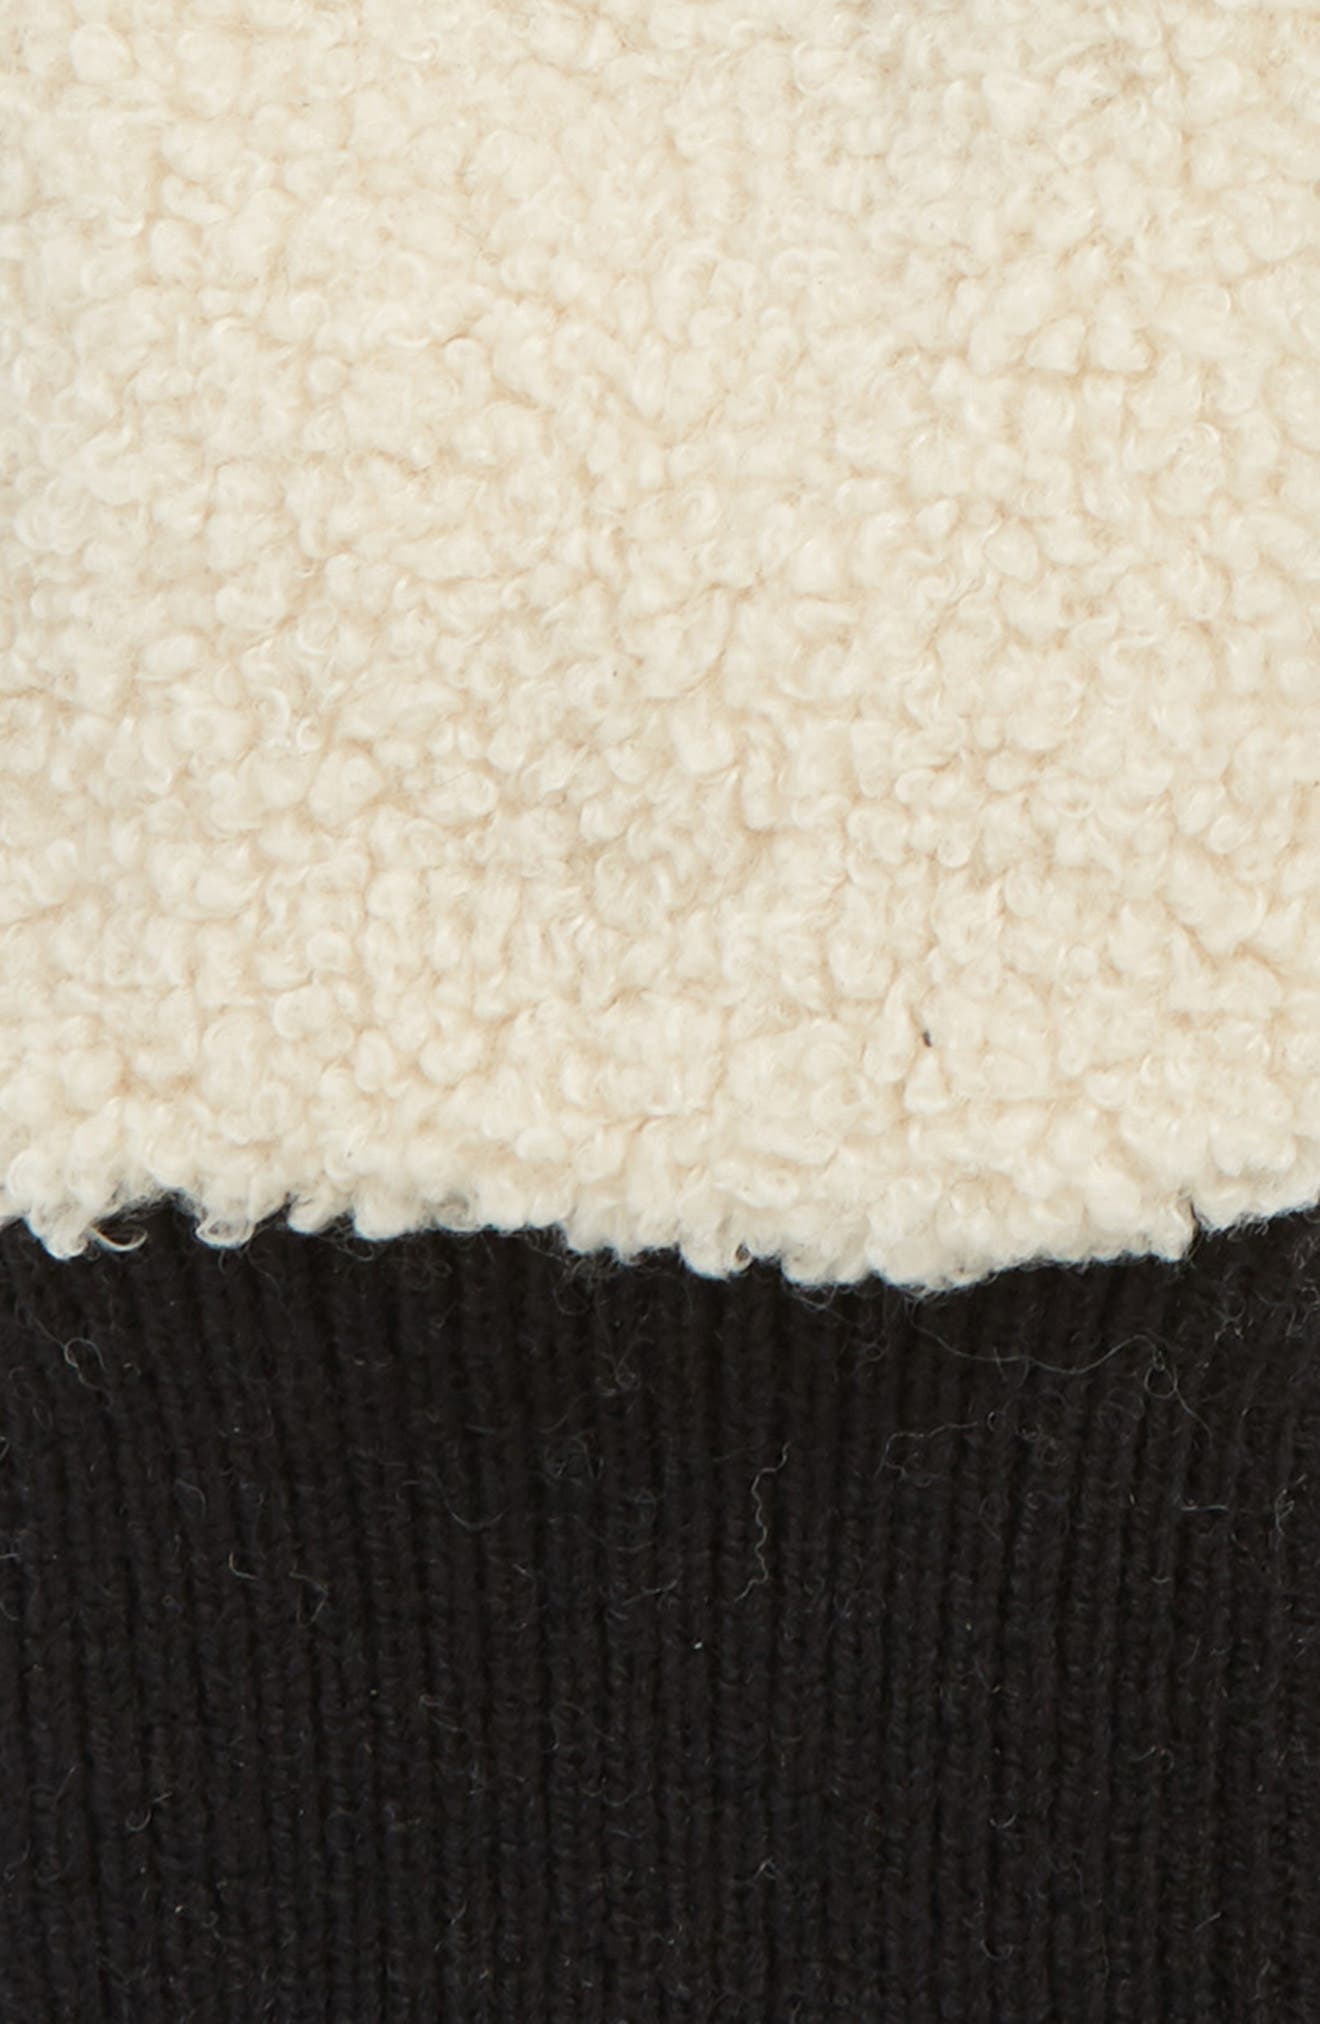 UGG<sup>®</sup> Faux Shearling Touchscreen Compatible Gloves,                             Alternate thumbnail 2, color,                             NATURAL